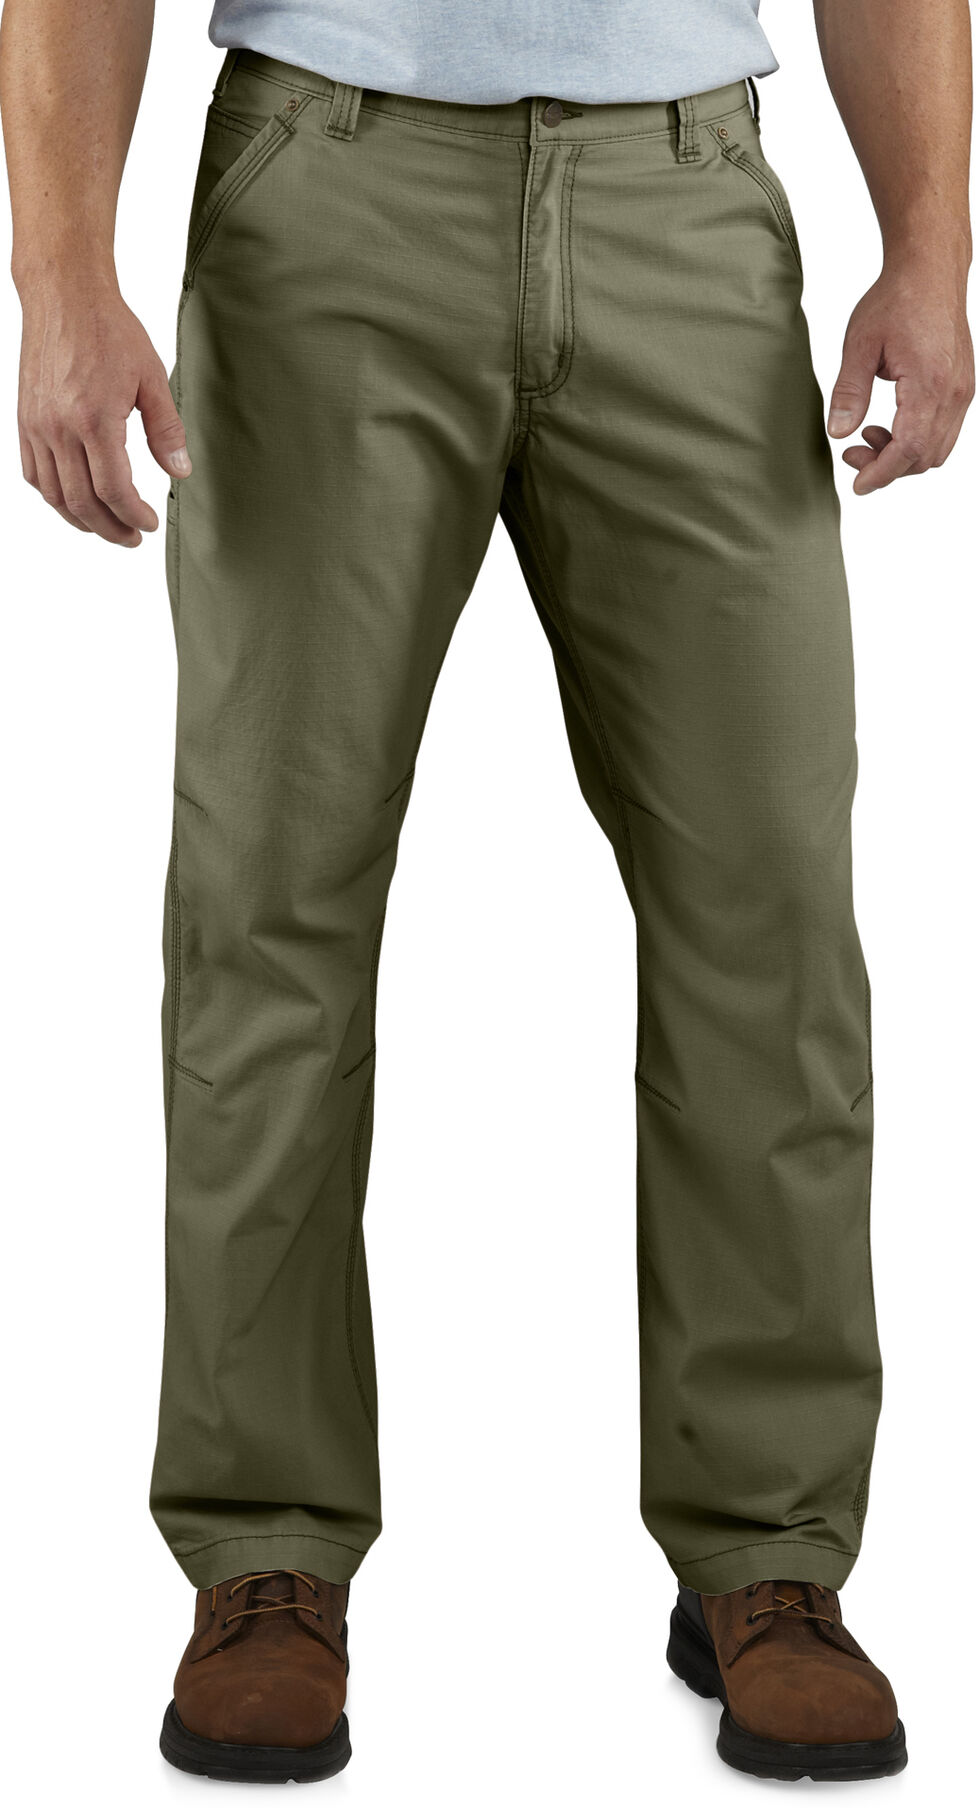 Carhartt Tacoma Ripstop Work Pants, Green, hi-res